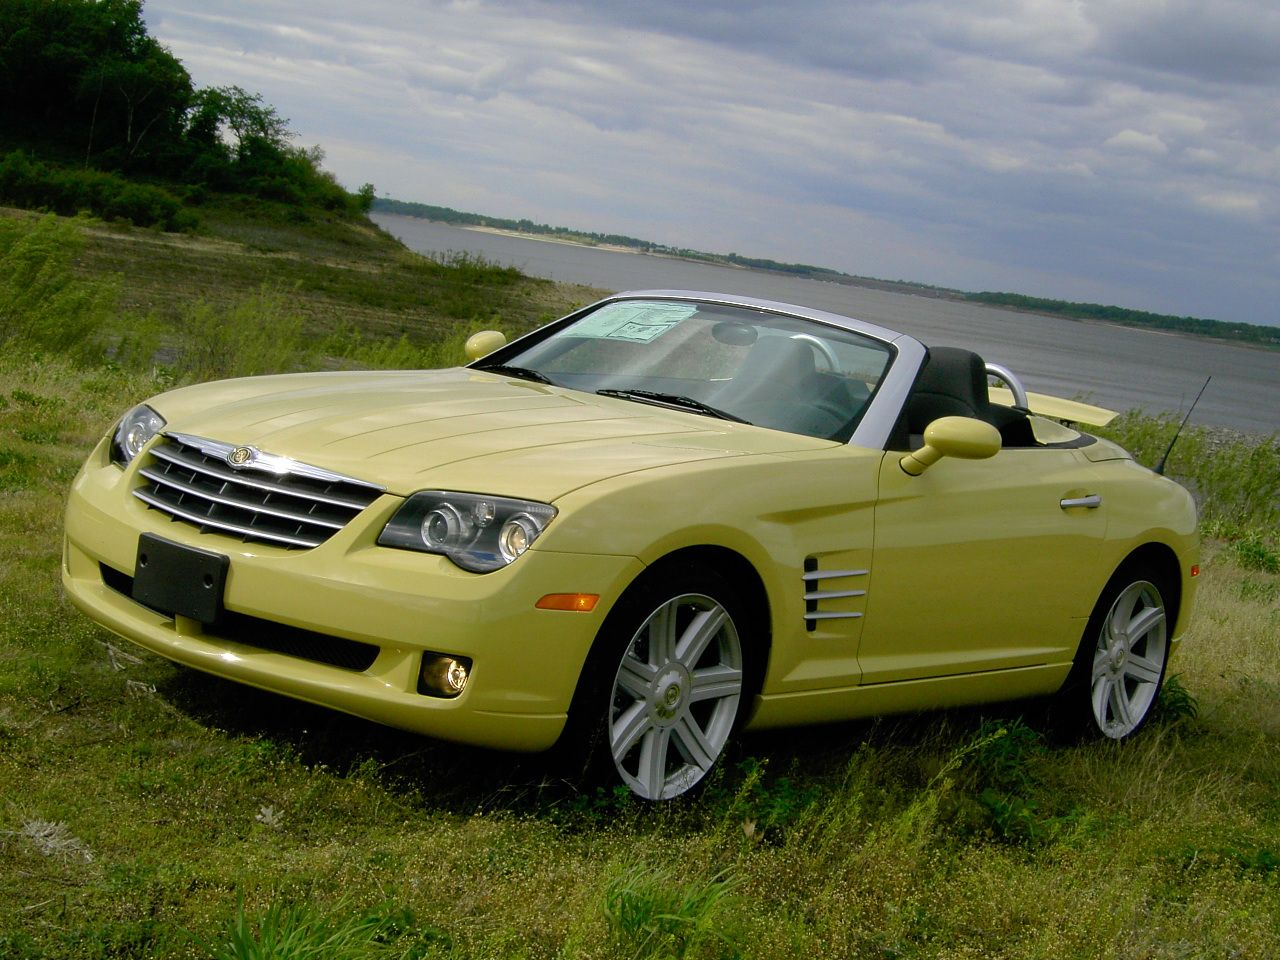 2005 chrysler crossfire convertible crossfire cars pinterest. Black Bedroom Furniture Sets. Home Design Ideas